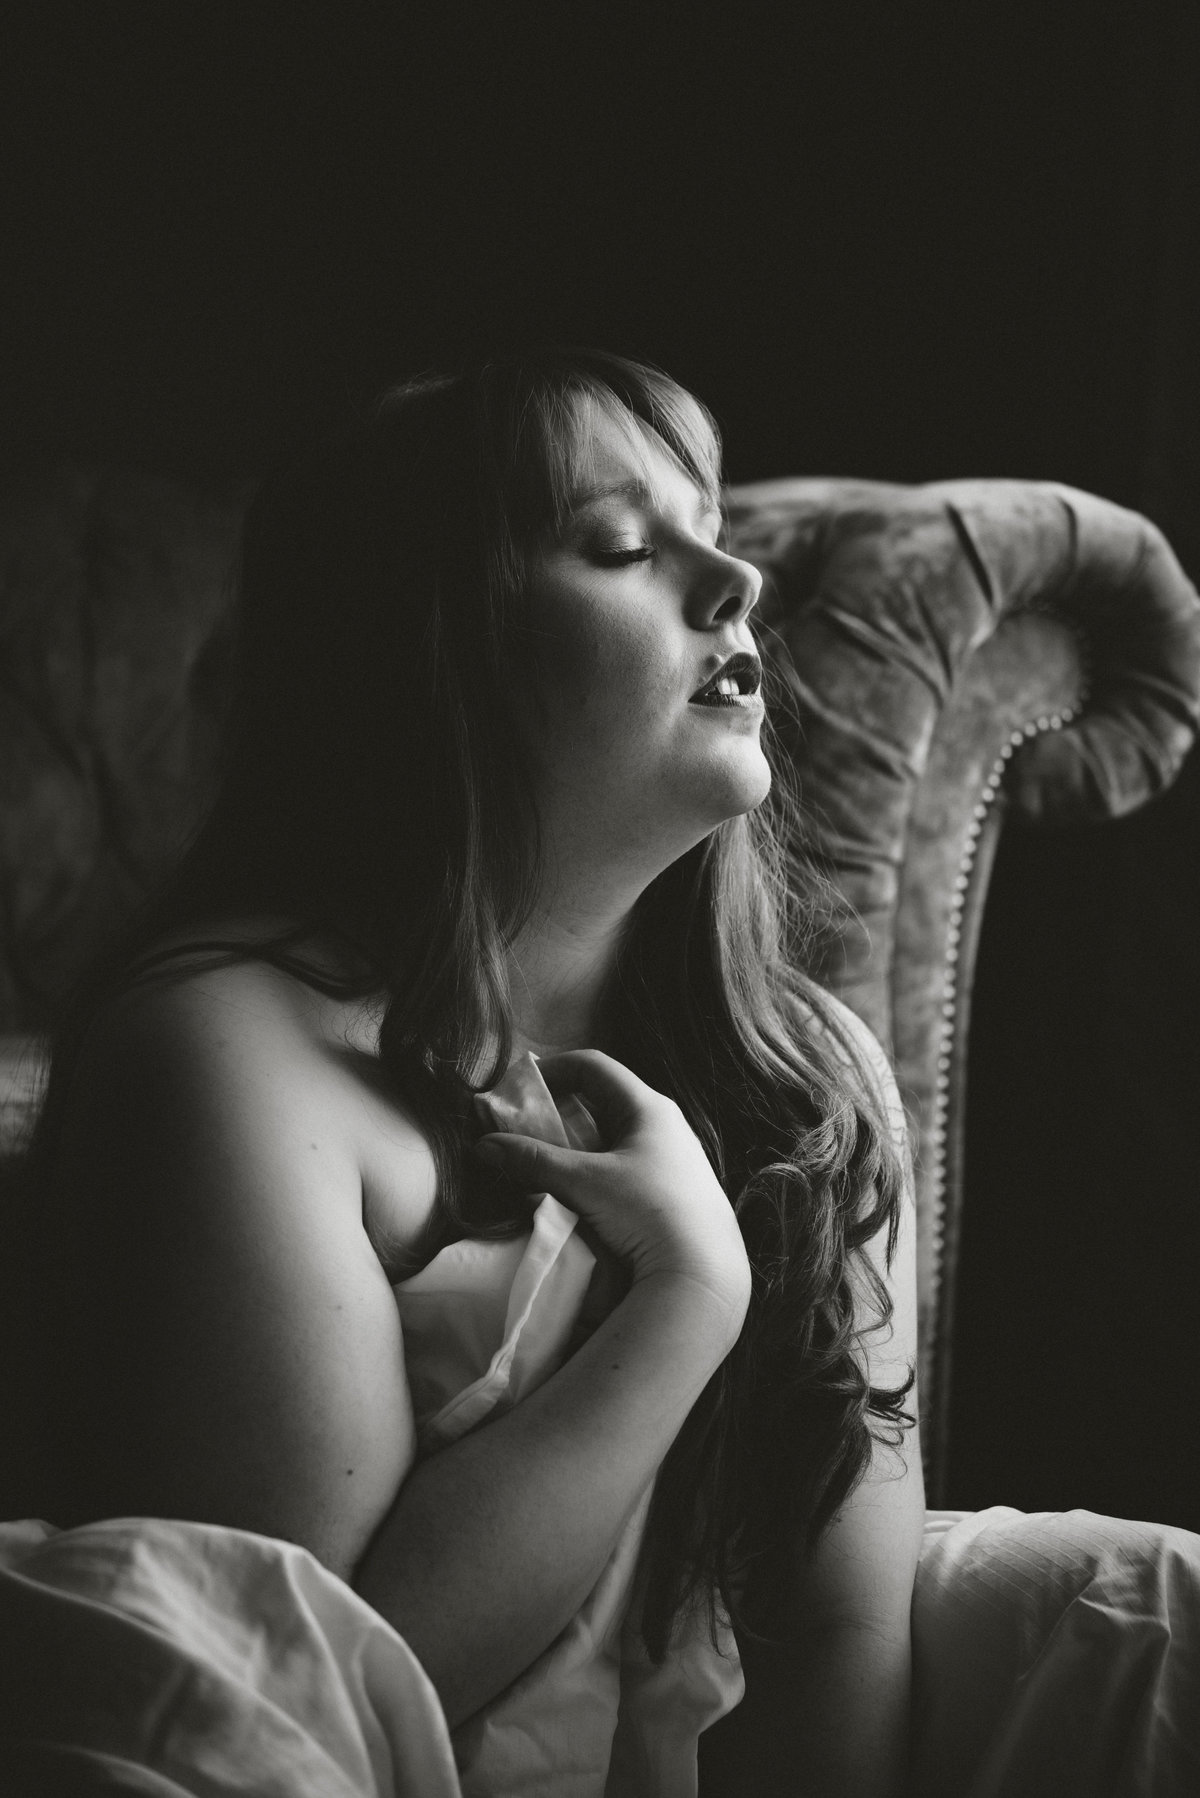 erika-gayle-photography-regina-boudoir-intimate-portrait-photographer-65